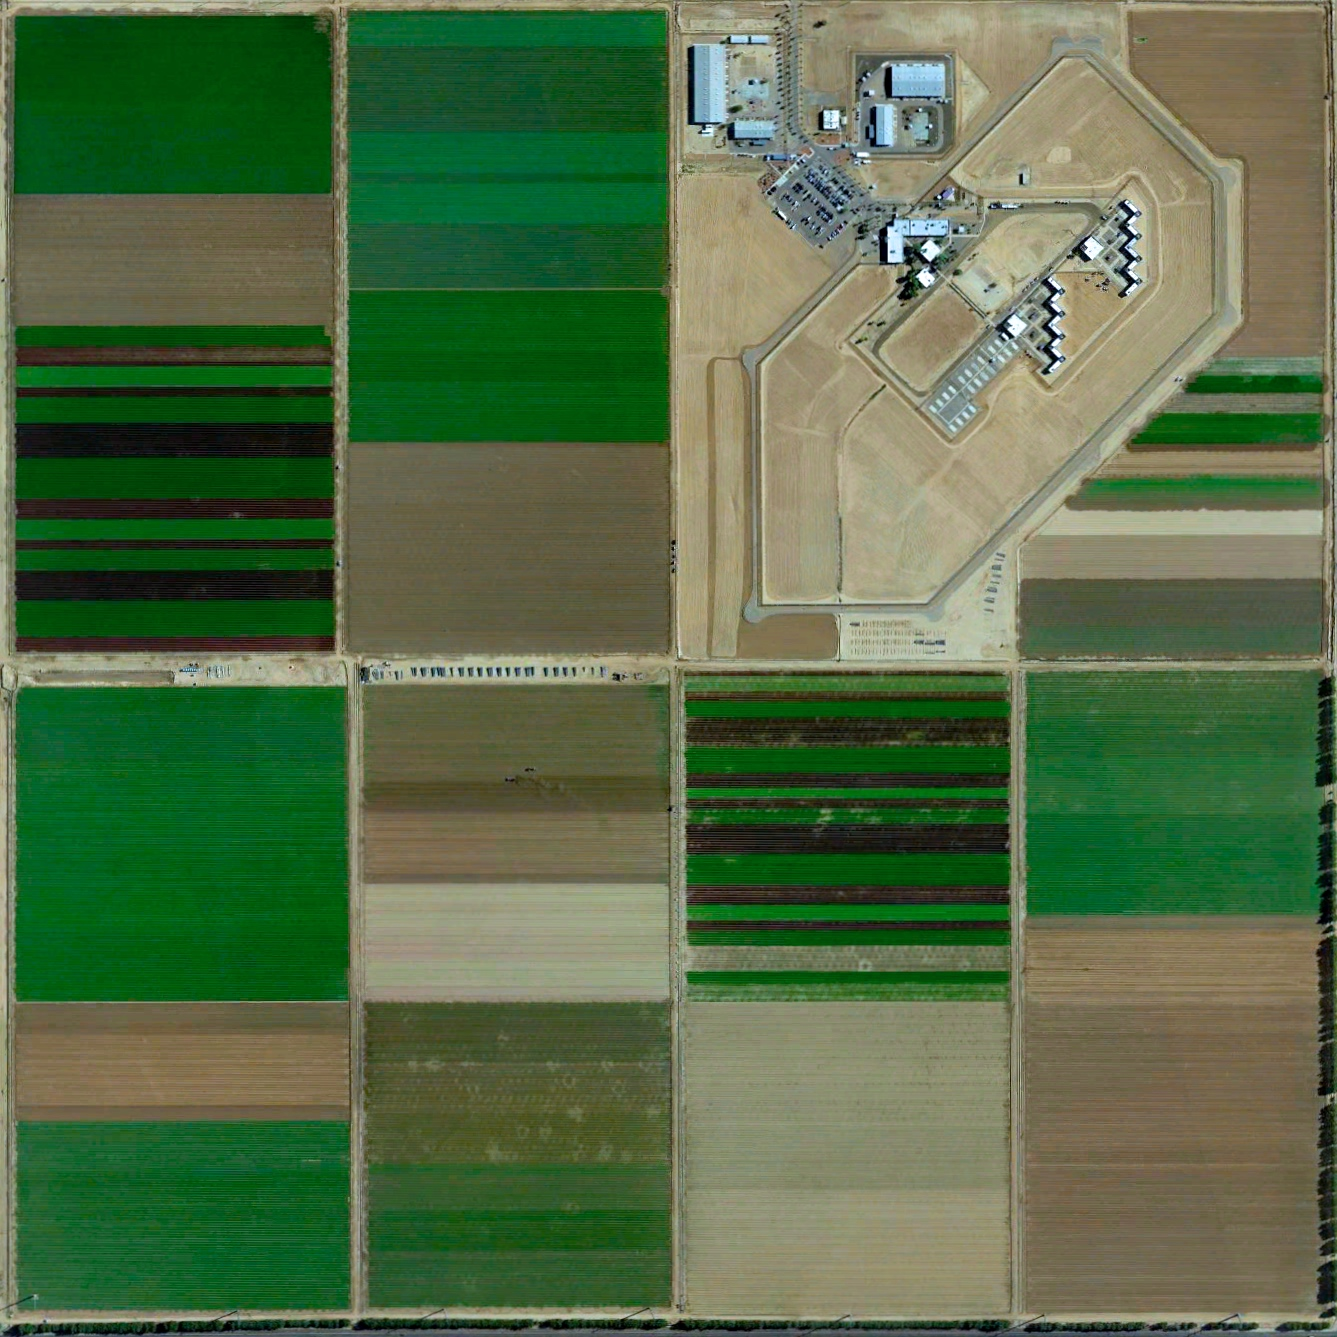 7/8/2015   Arizona State Prison Complex - Perryville   Goodyear, Arizona, USA  33°28′14″N 112°26′30″W    The Arizona Department of Corrections facility in Goodyear, Arizona is surrounded by fields of lettuce, cabbage, and red potatoes. The prison holds 2,382 inmates across eight housing units (only one is pictured here). This Overview is part of a collaborative photo essay that we just released with Fusion to detail how prisons have become a part of the American landscape, often in plain sight. Check out the full story  here .